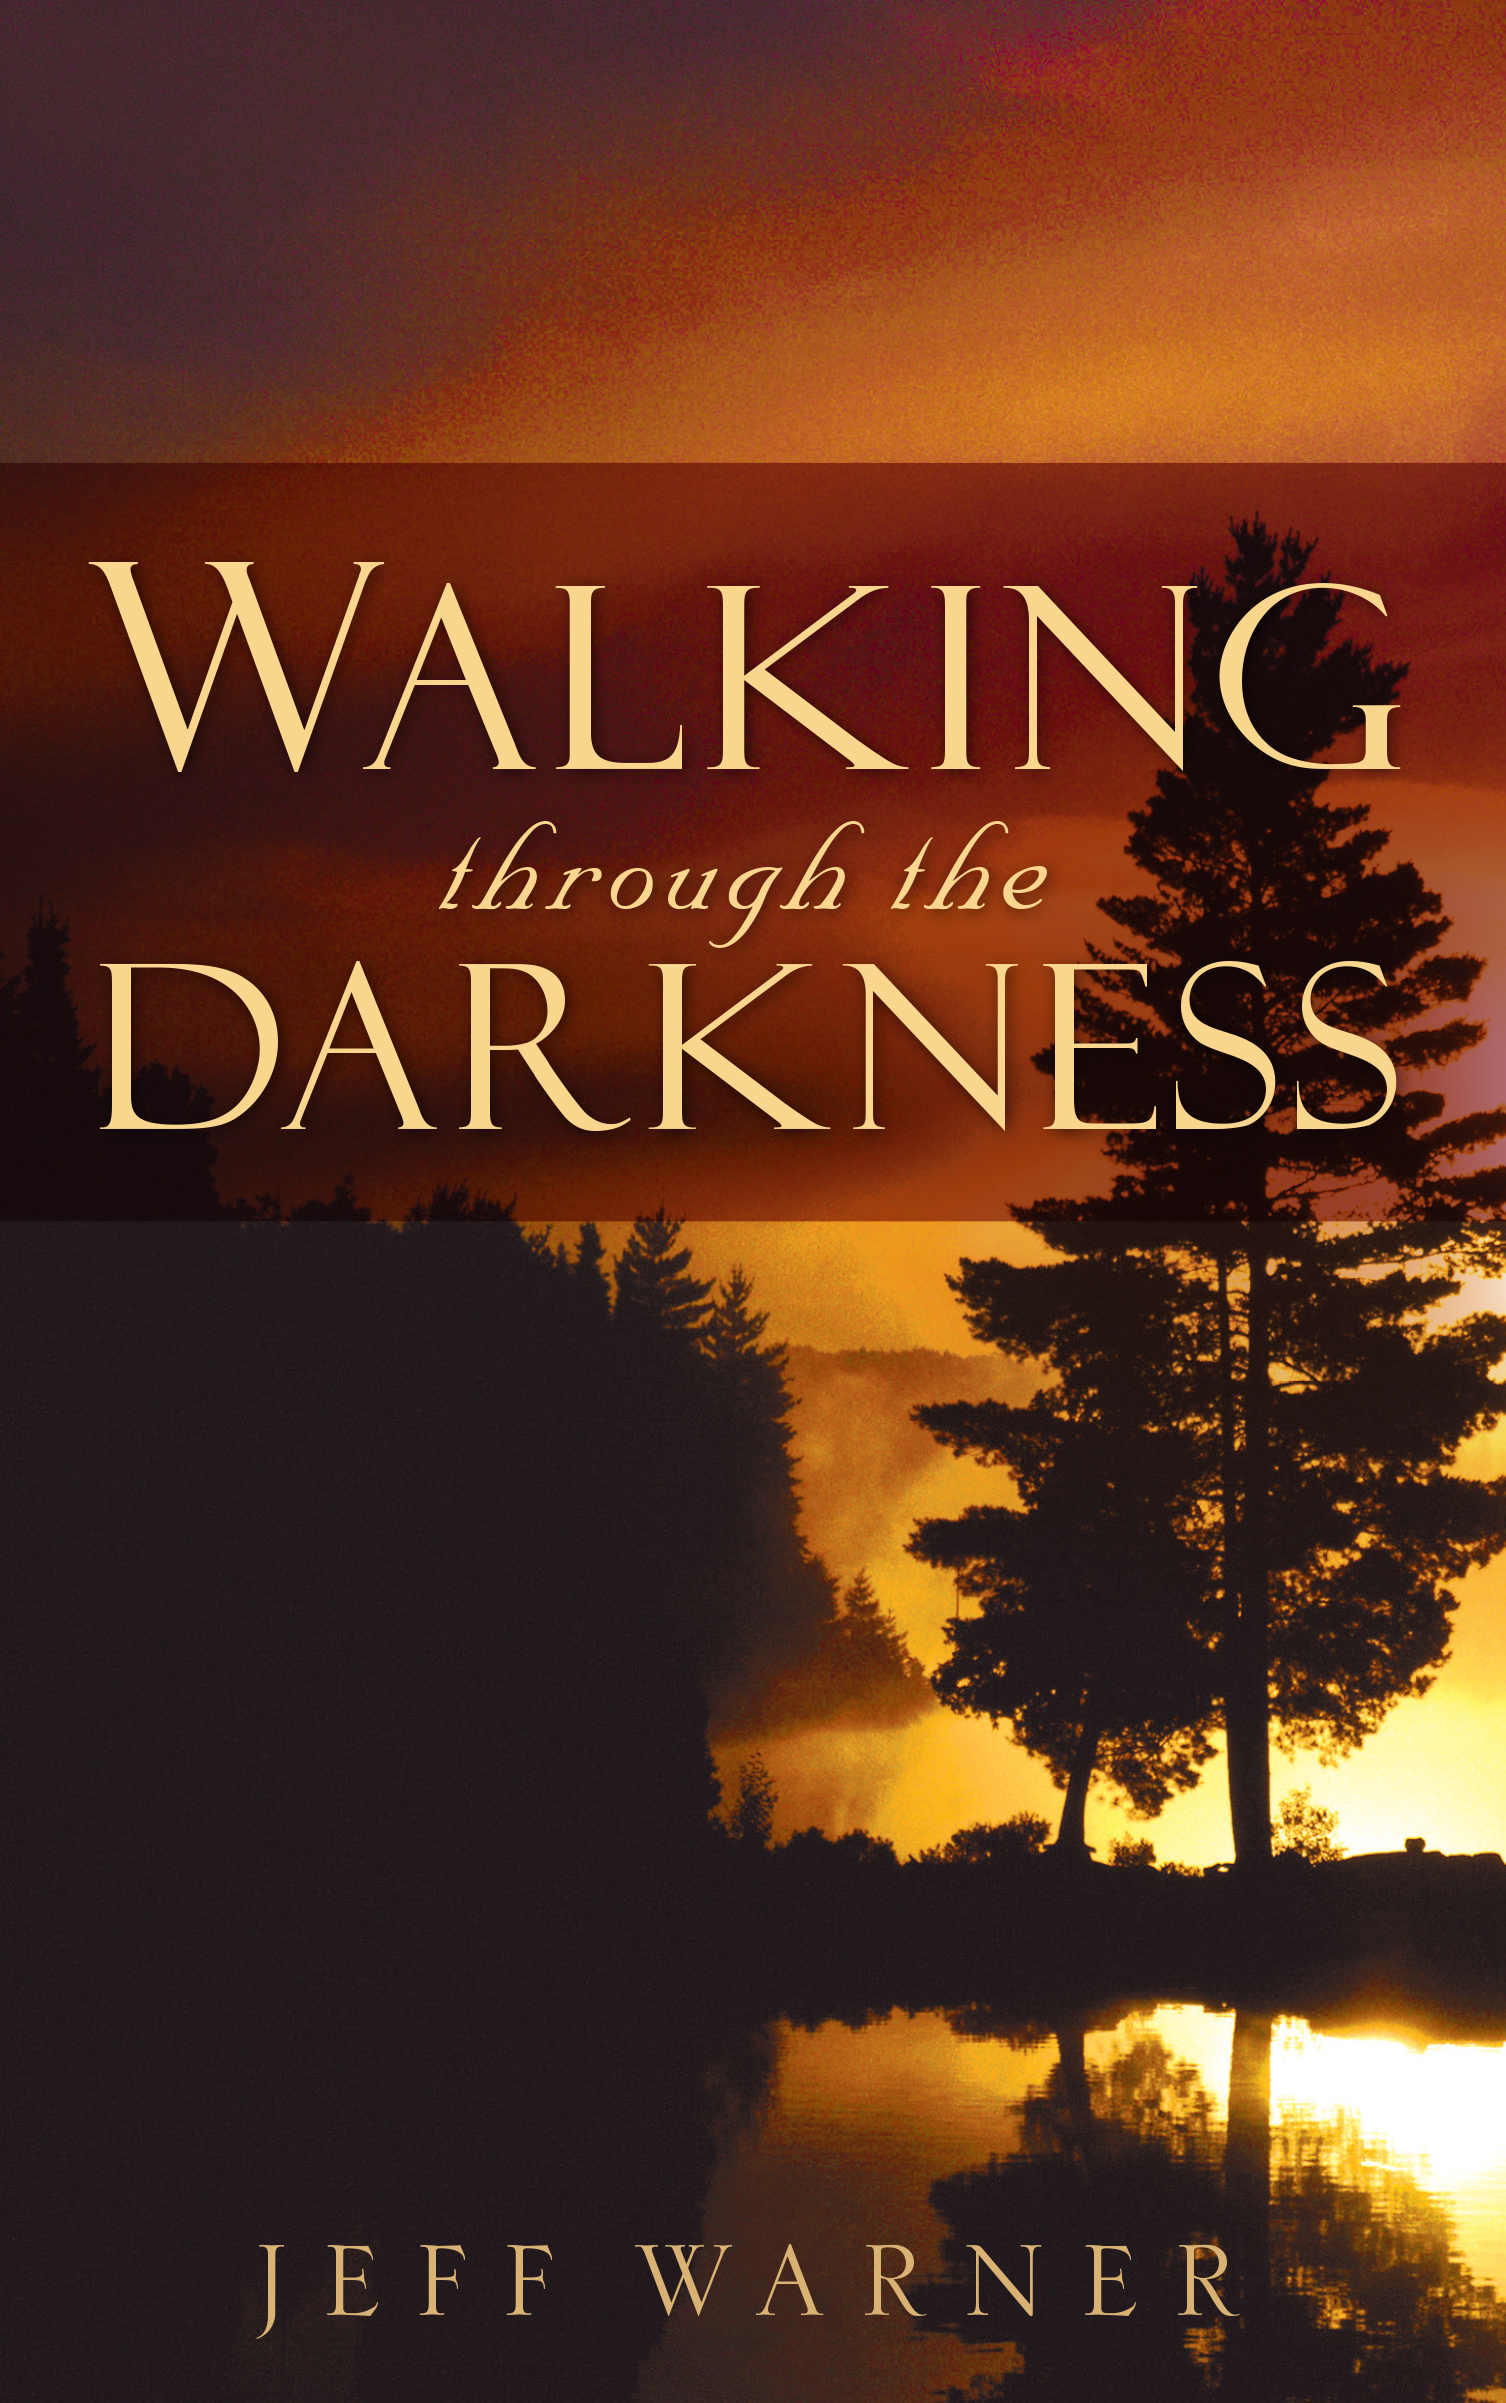 Darkness Front Cover - 9781600343605-Front Cover.jpg